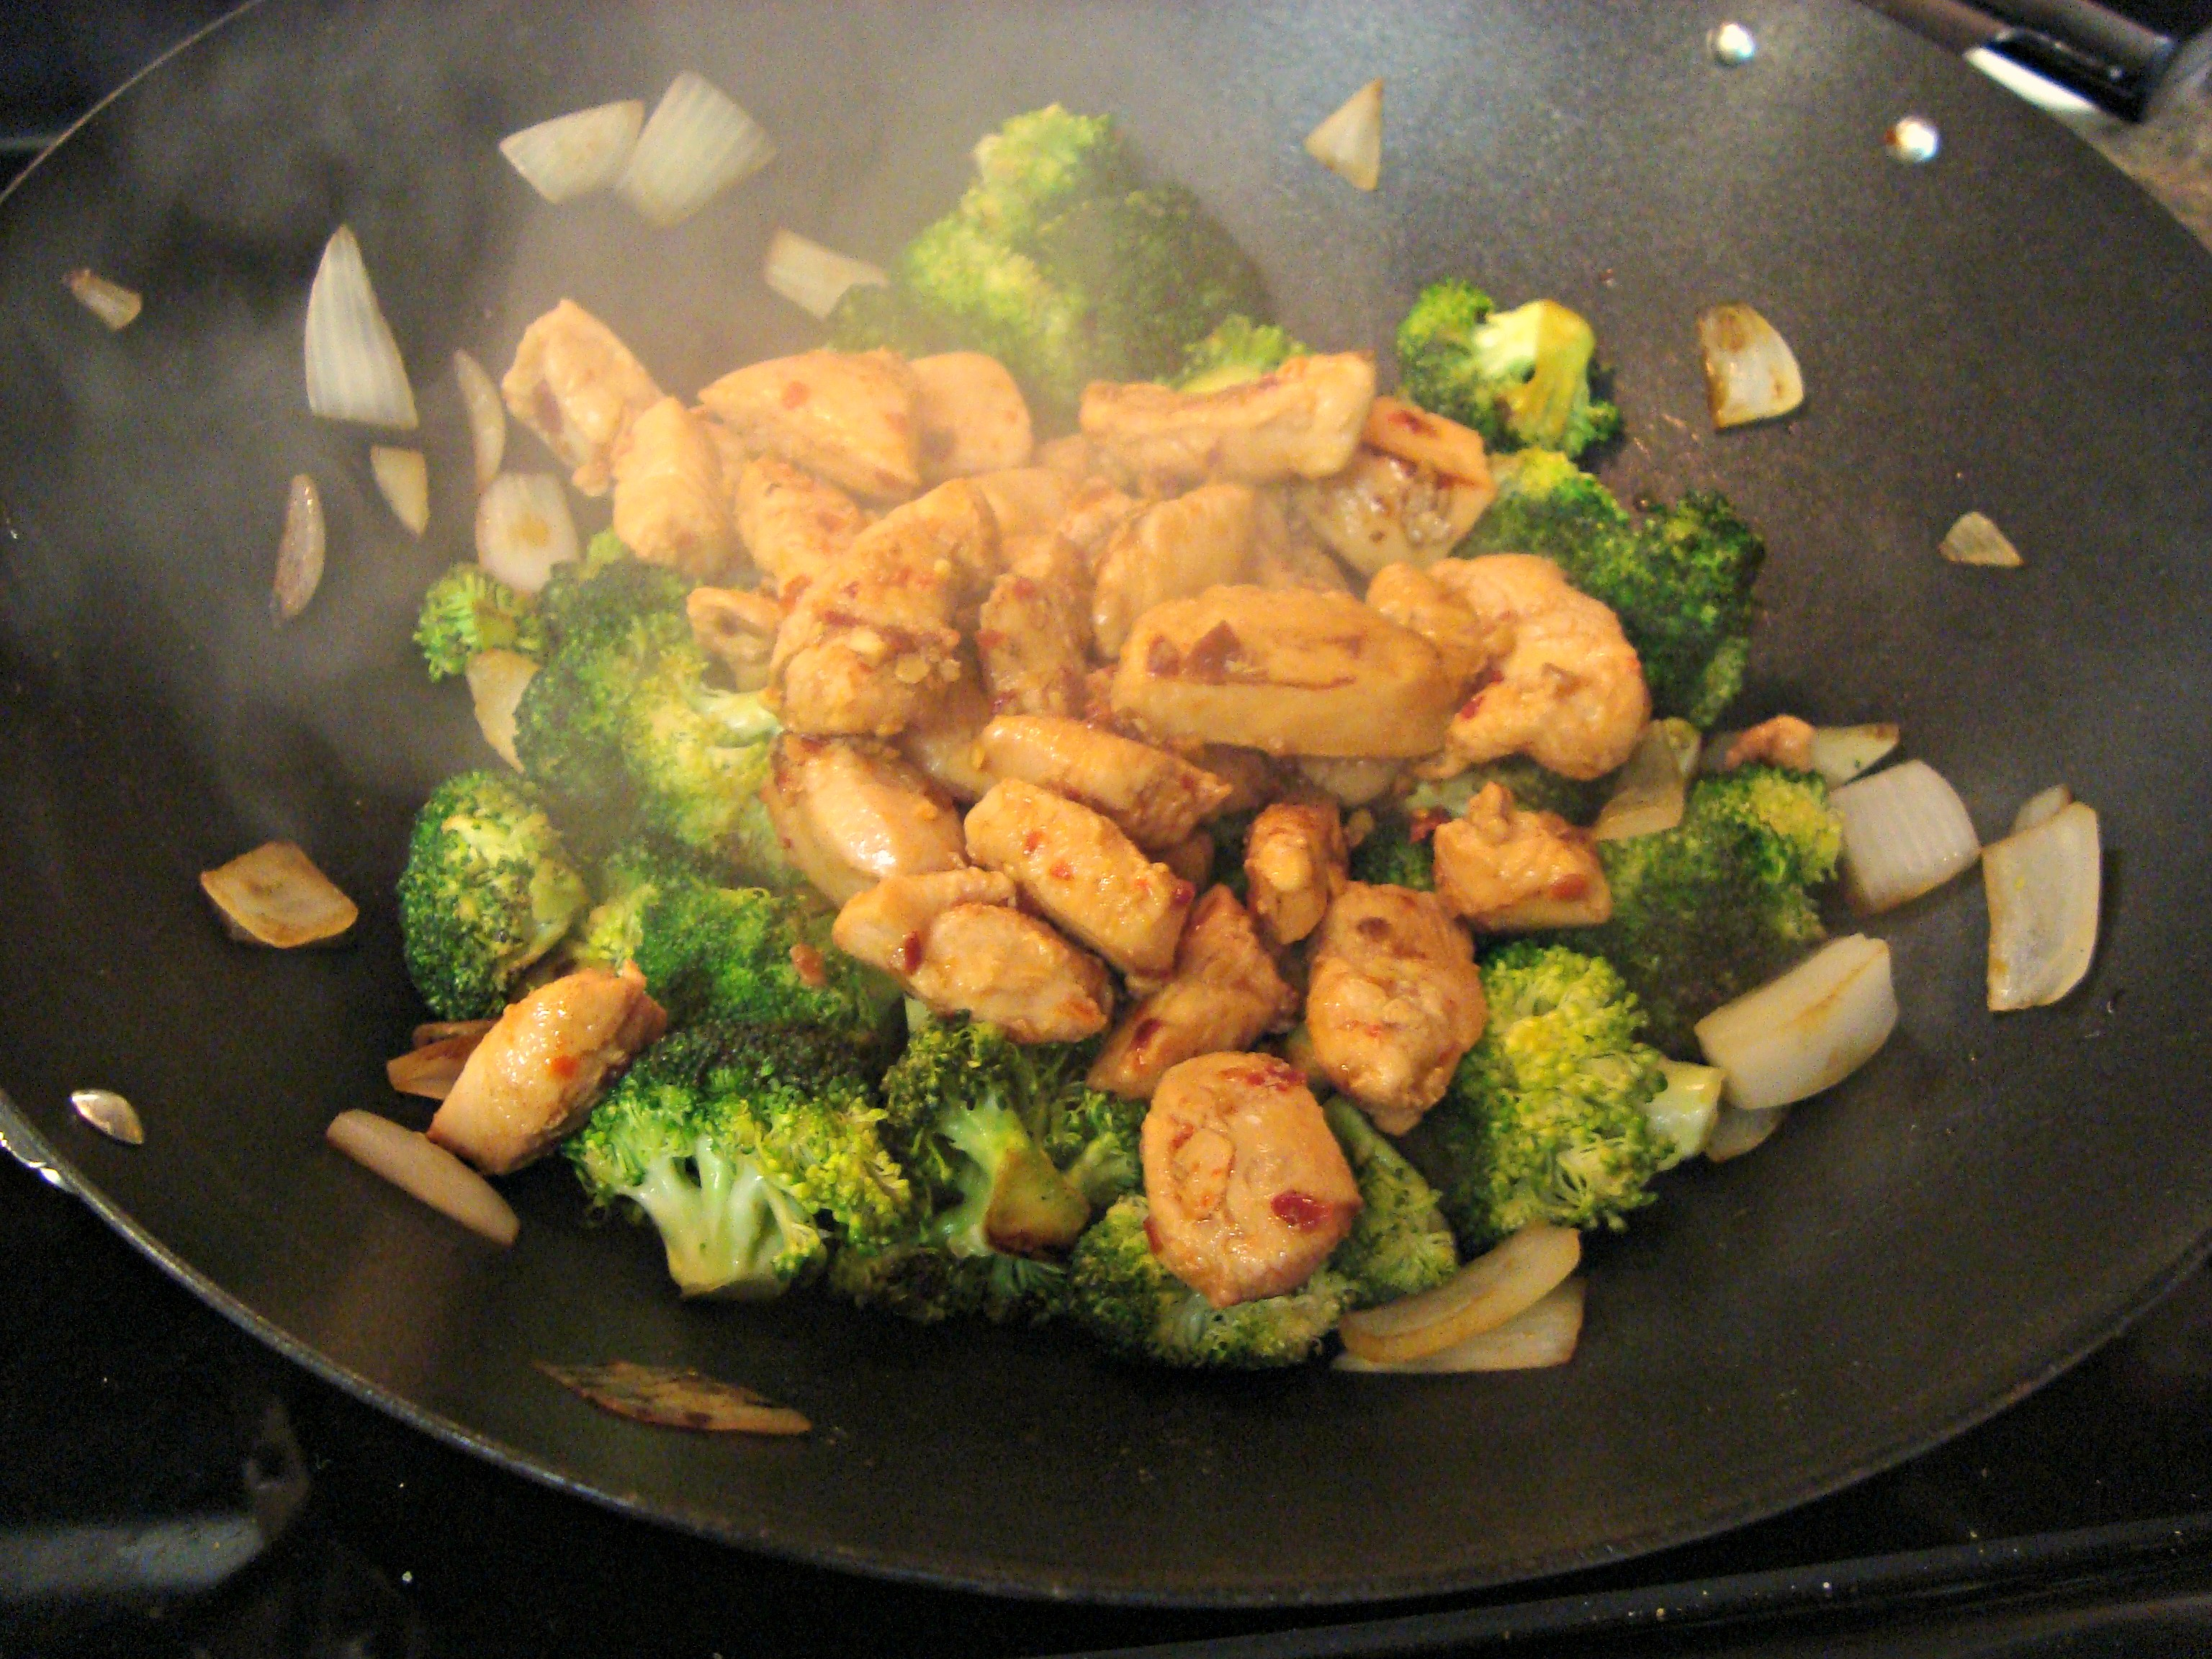 Chicken and Broccoli Stir Fry | A seat at my table